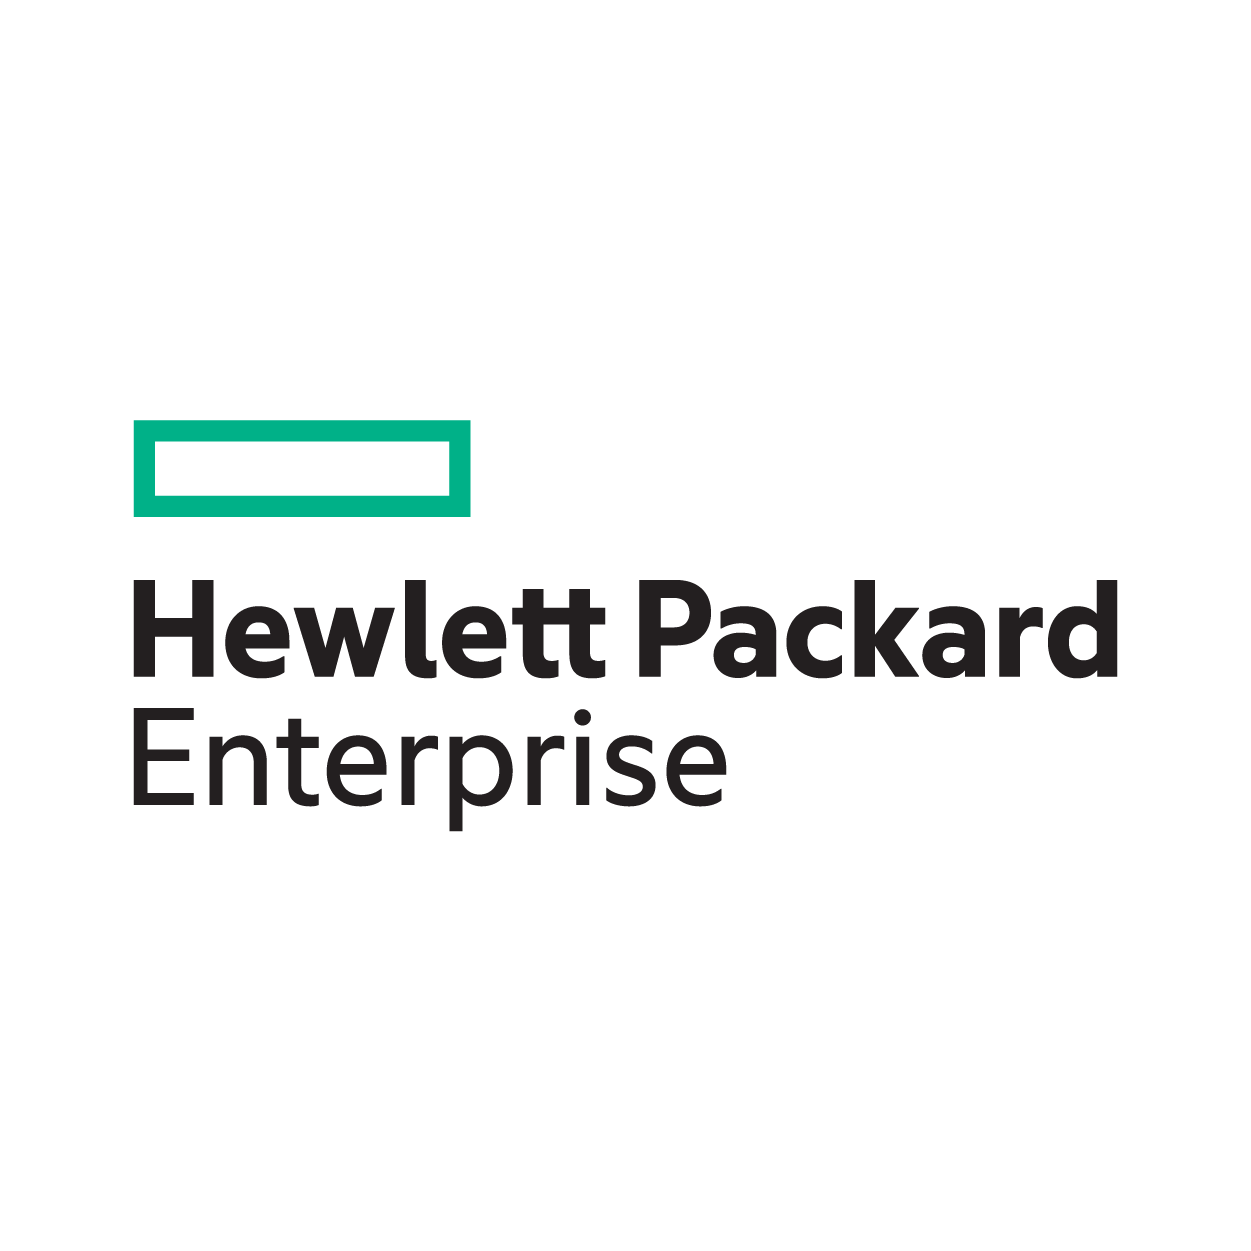 Hewlett Pakcard Enterprise